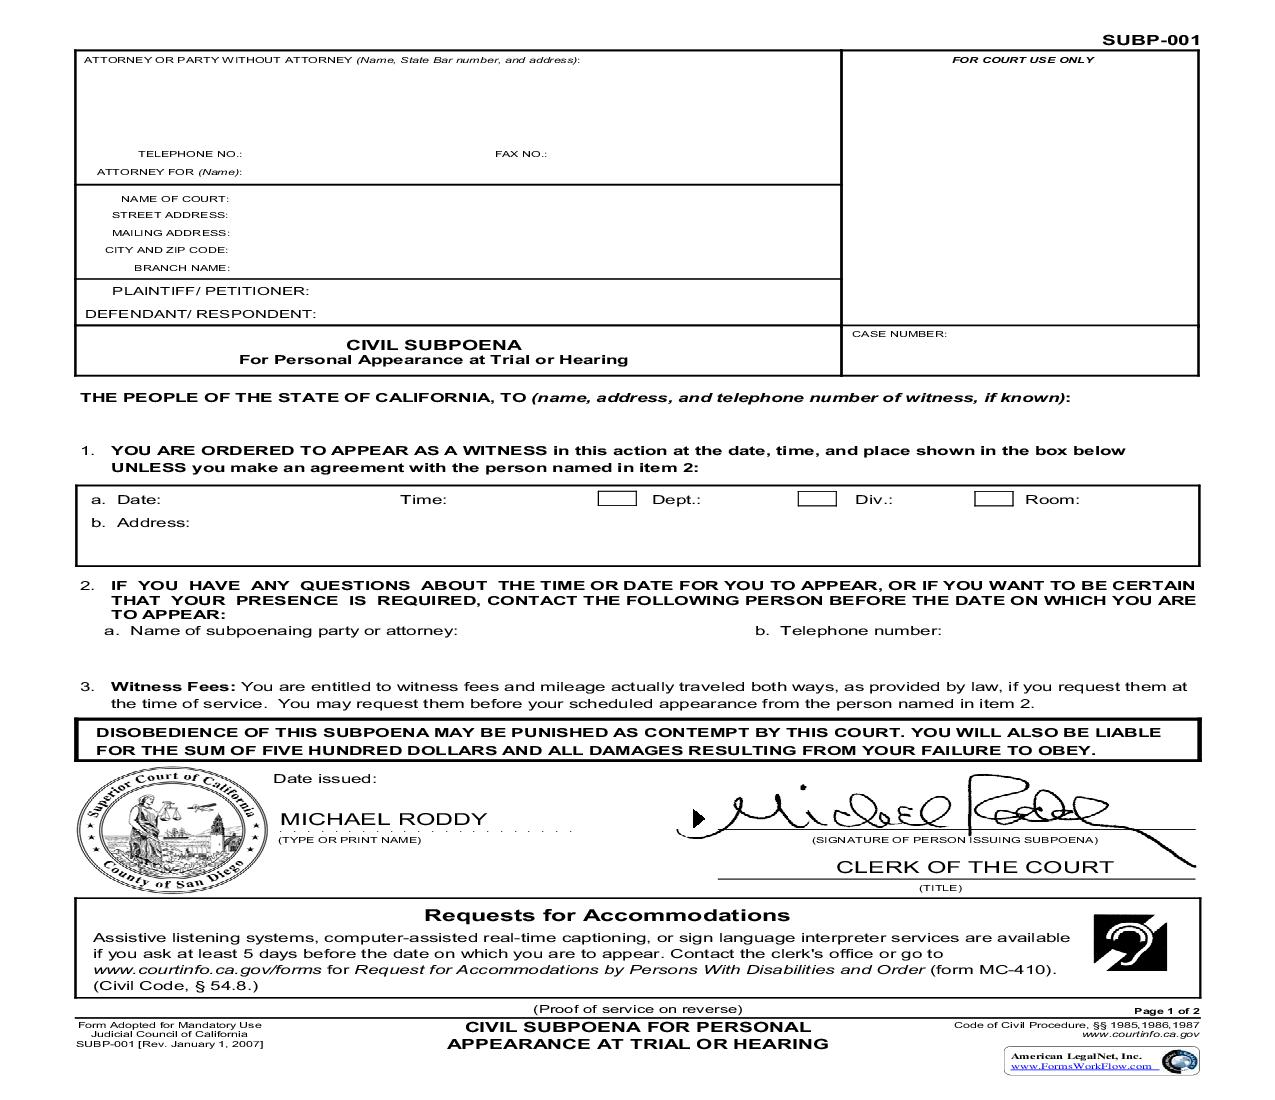 Civil Subpoena For Personal Appearance (San Diego Pre-Issued) {SUBP-001} | Pdf Fpdf Doc Docx | California